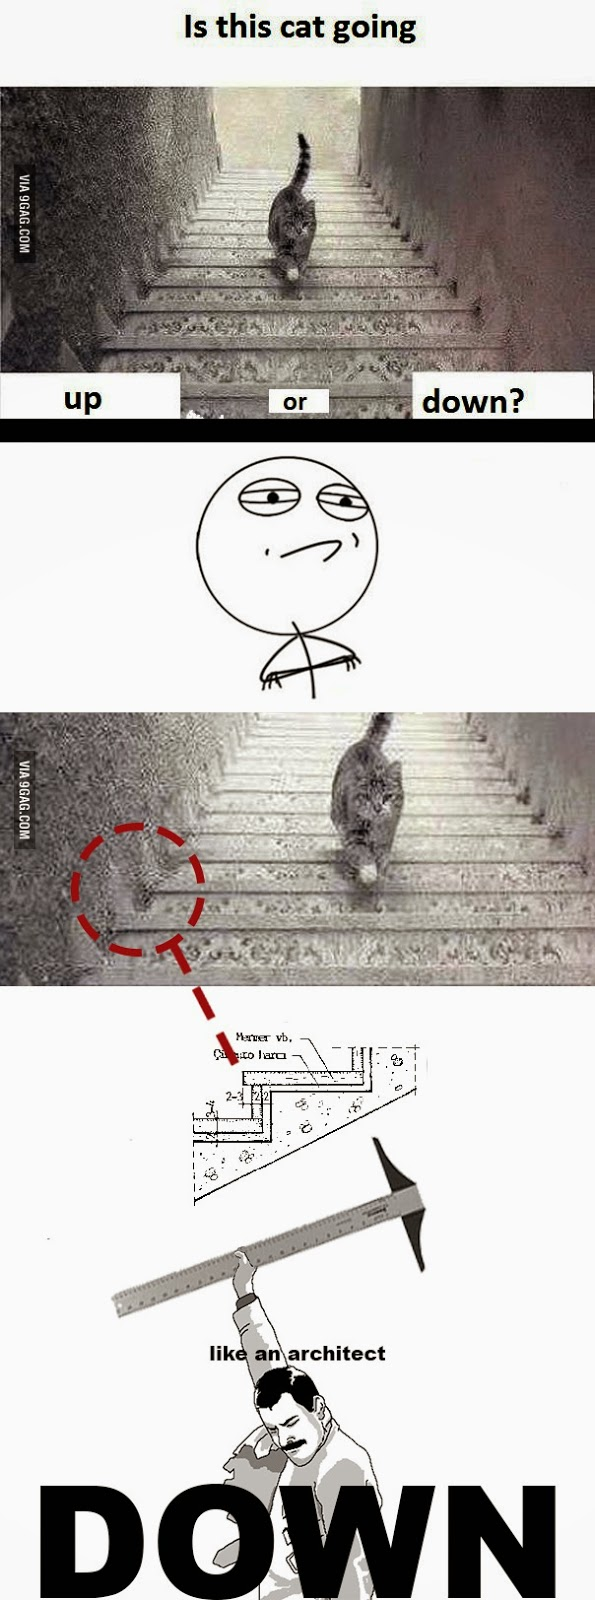 9gag is cat gong up stairs